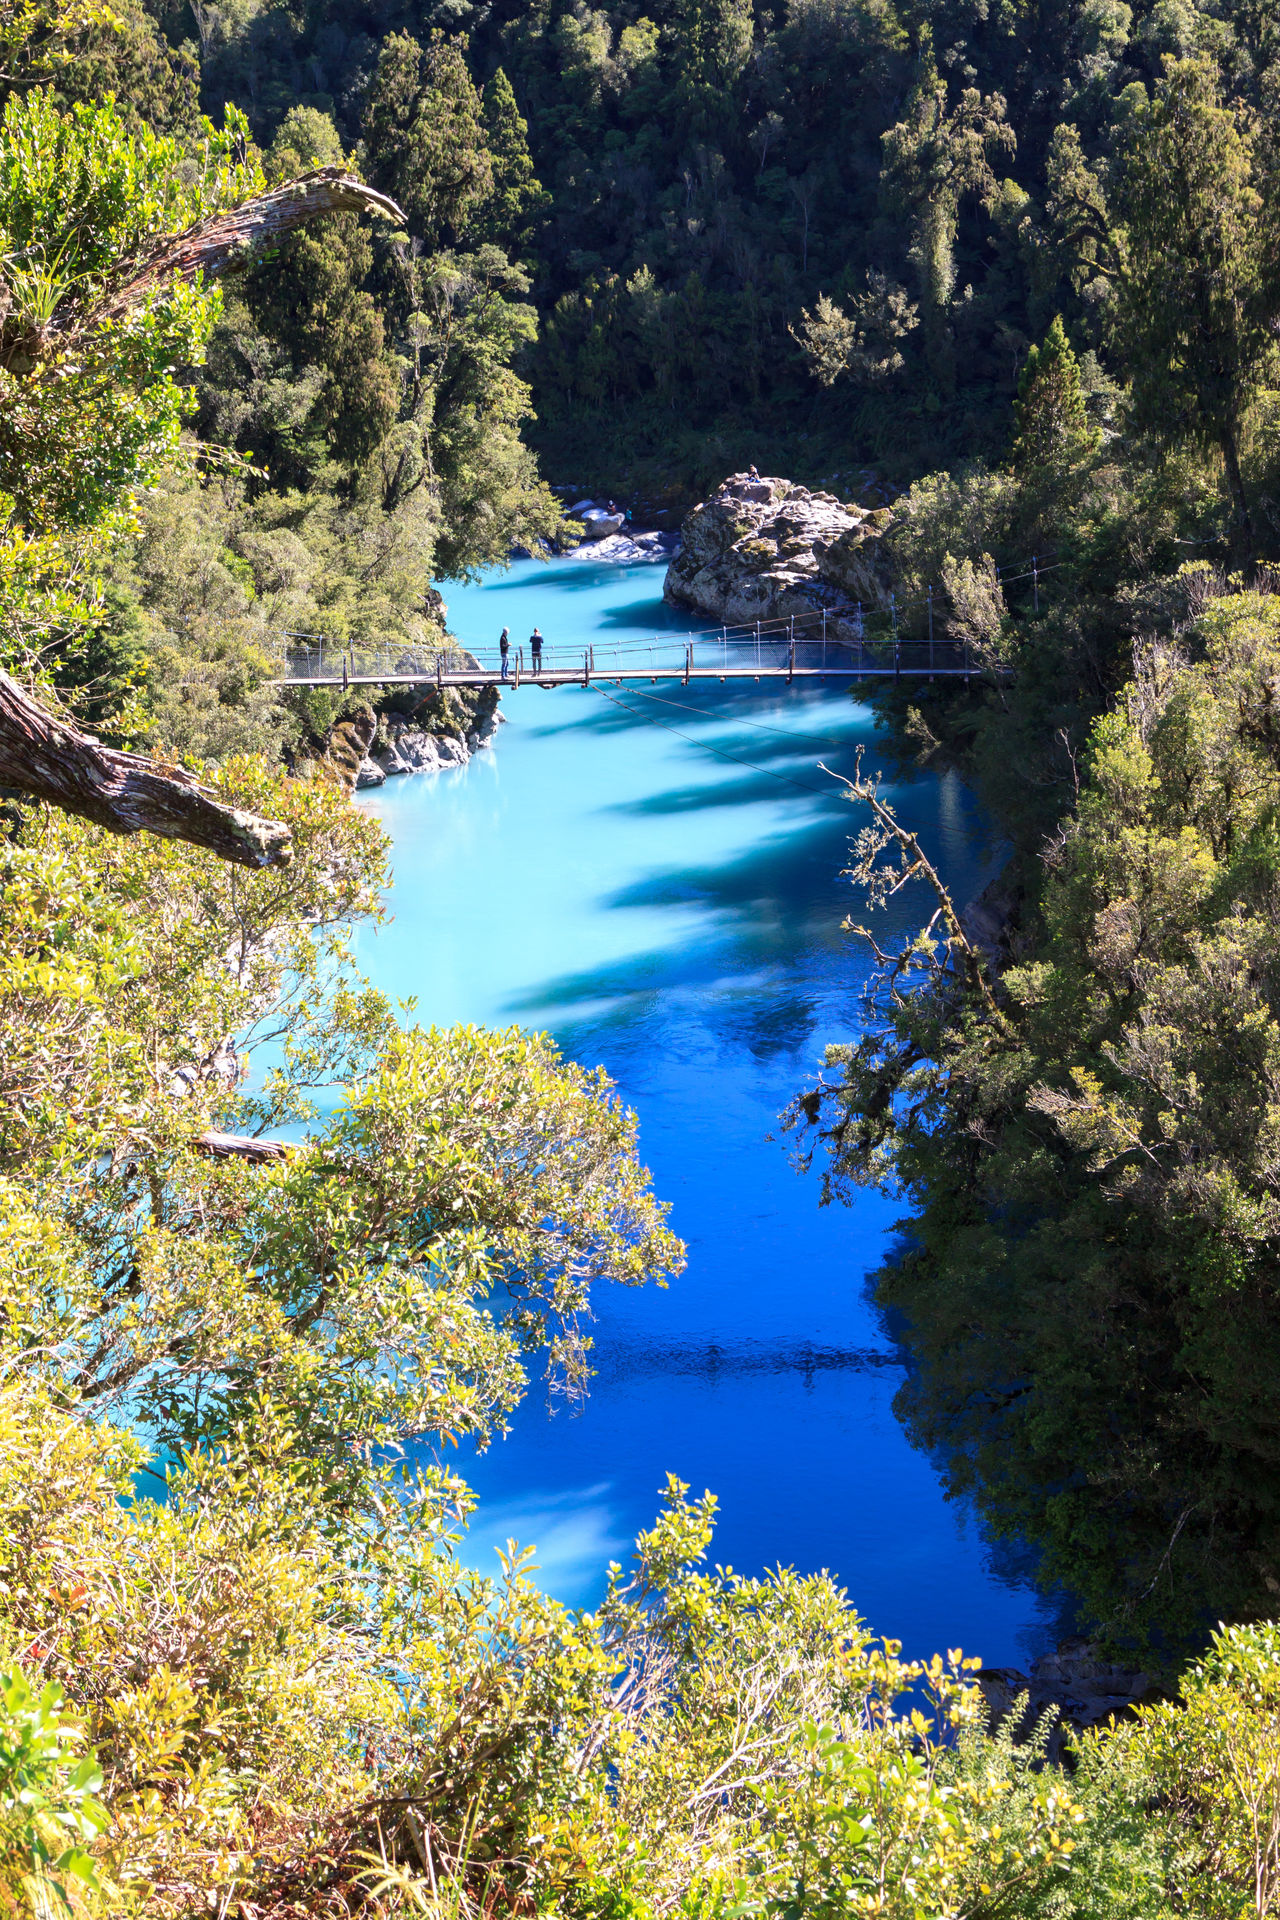 Hokitika Gorge, with bright blue water Beauty In Nature Blue Blue Water Bridge Bridge - Man Made Structure Day Eye4photography  EyeEm Nature Lover Forest Growth High Angle View Lake Nature No People Outdoors Plant Scenics Tranquil Scene Tranquility Tree Water